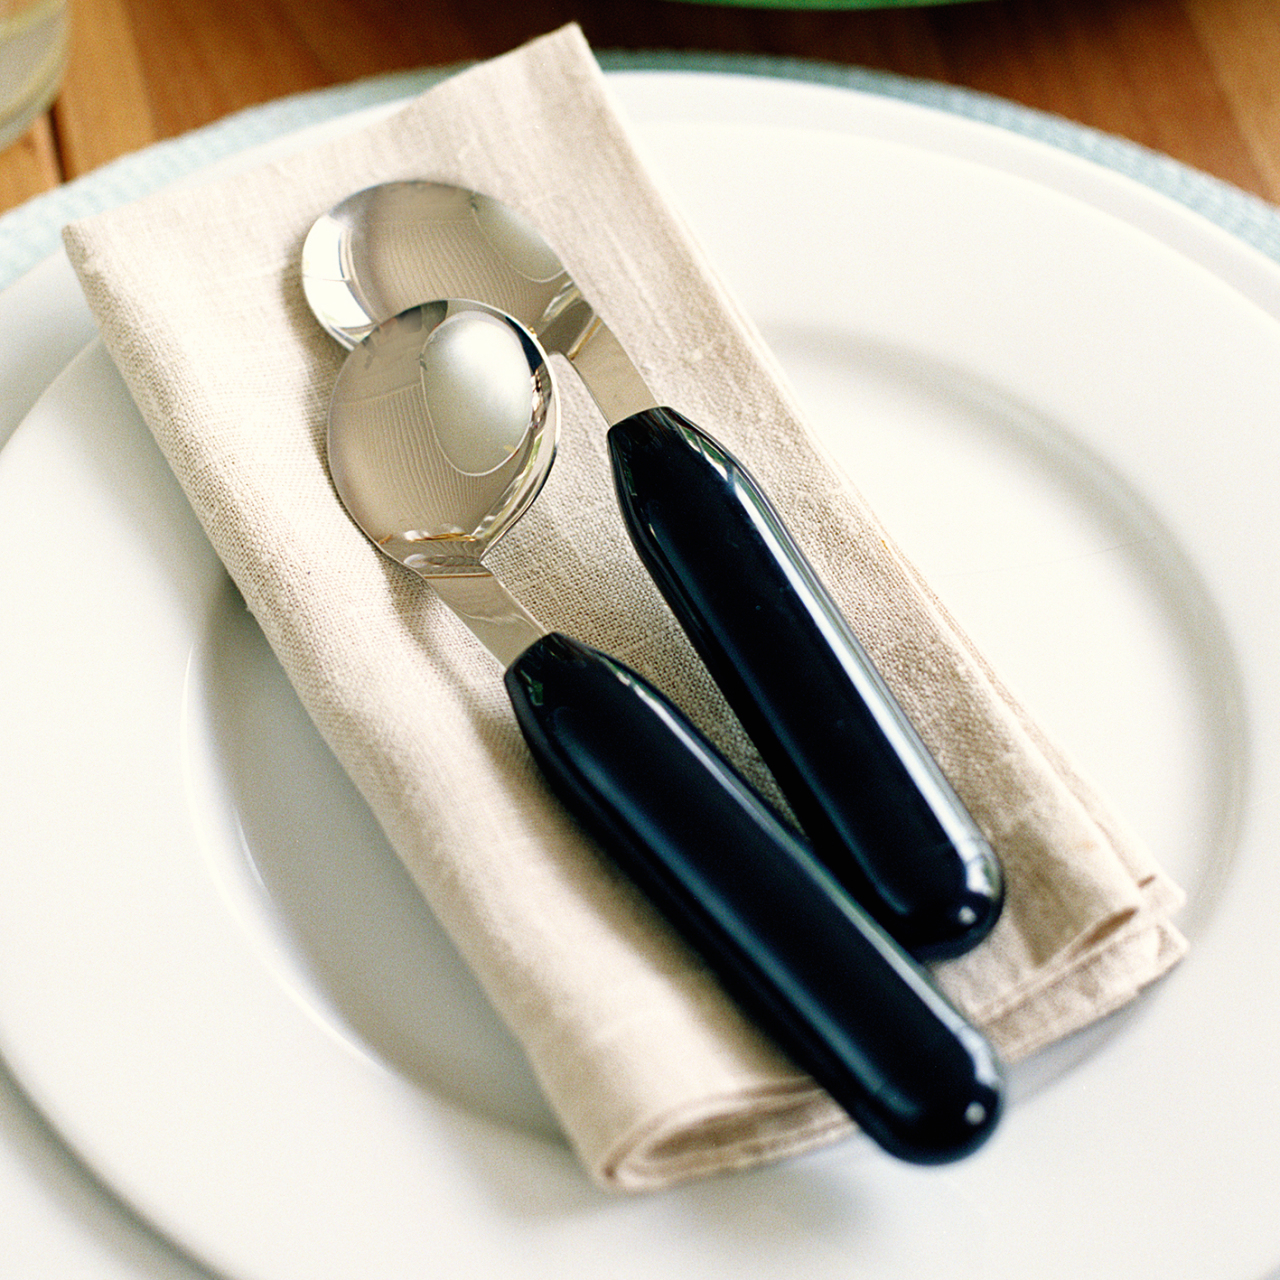 The angled spoons are available for both right-handed and left-handed use.